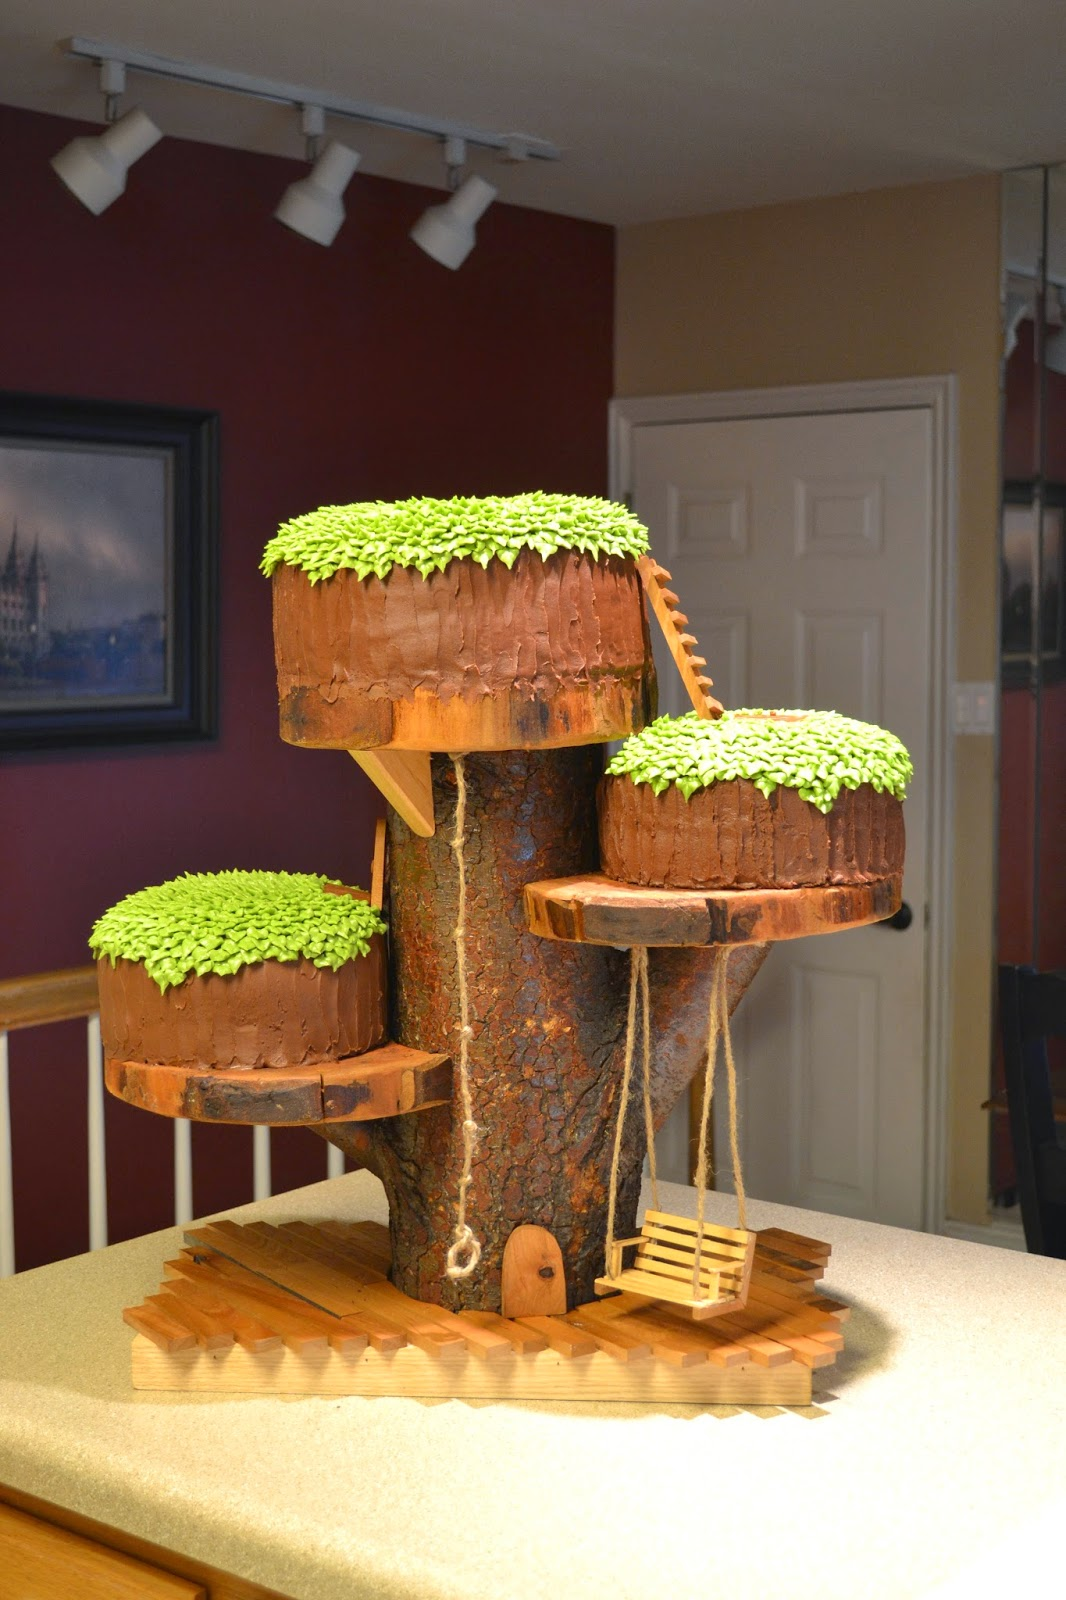 T Cakes Treehouse Cake